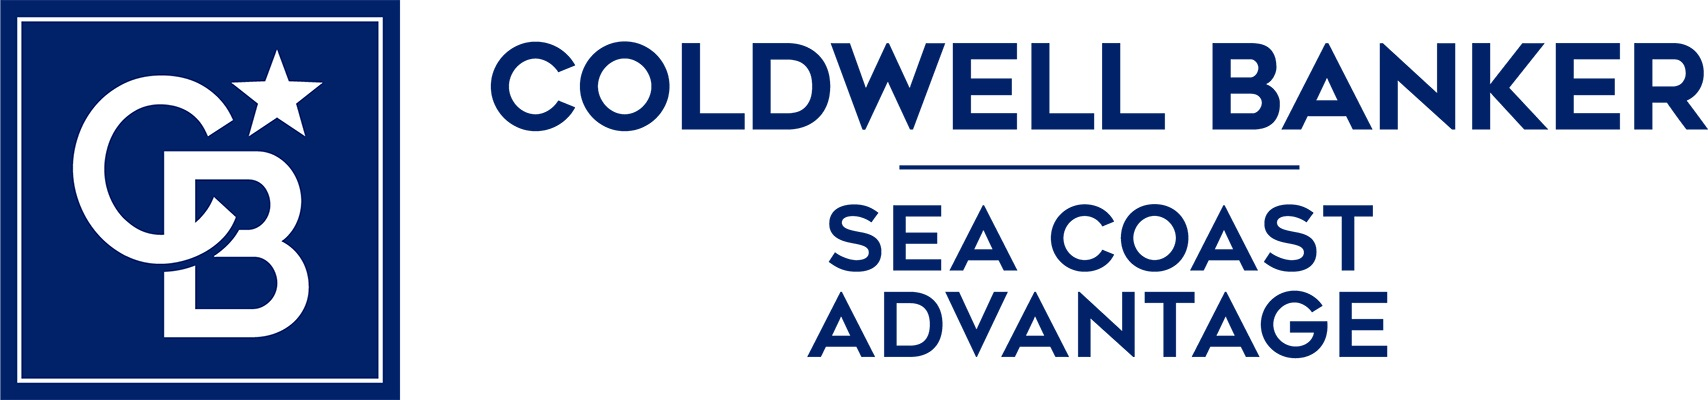 Robert Silliman - Coldwell Banker Sea Coast Advantage Realty